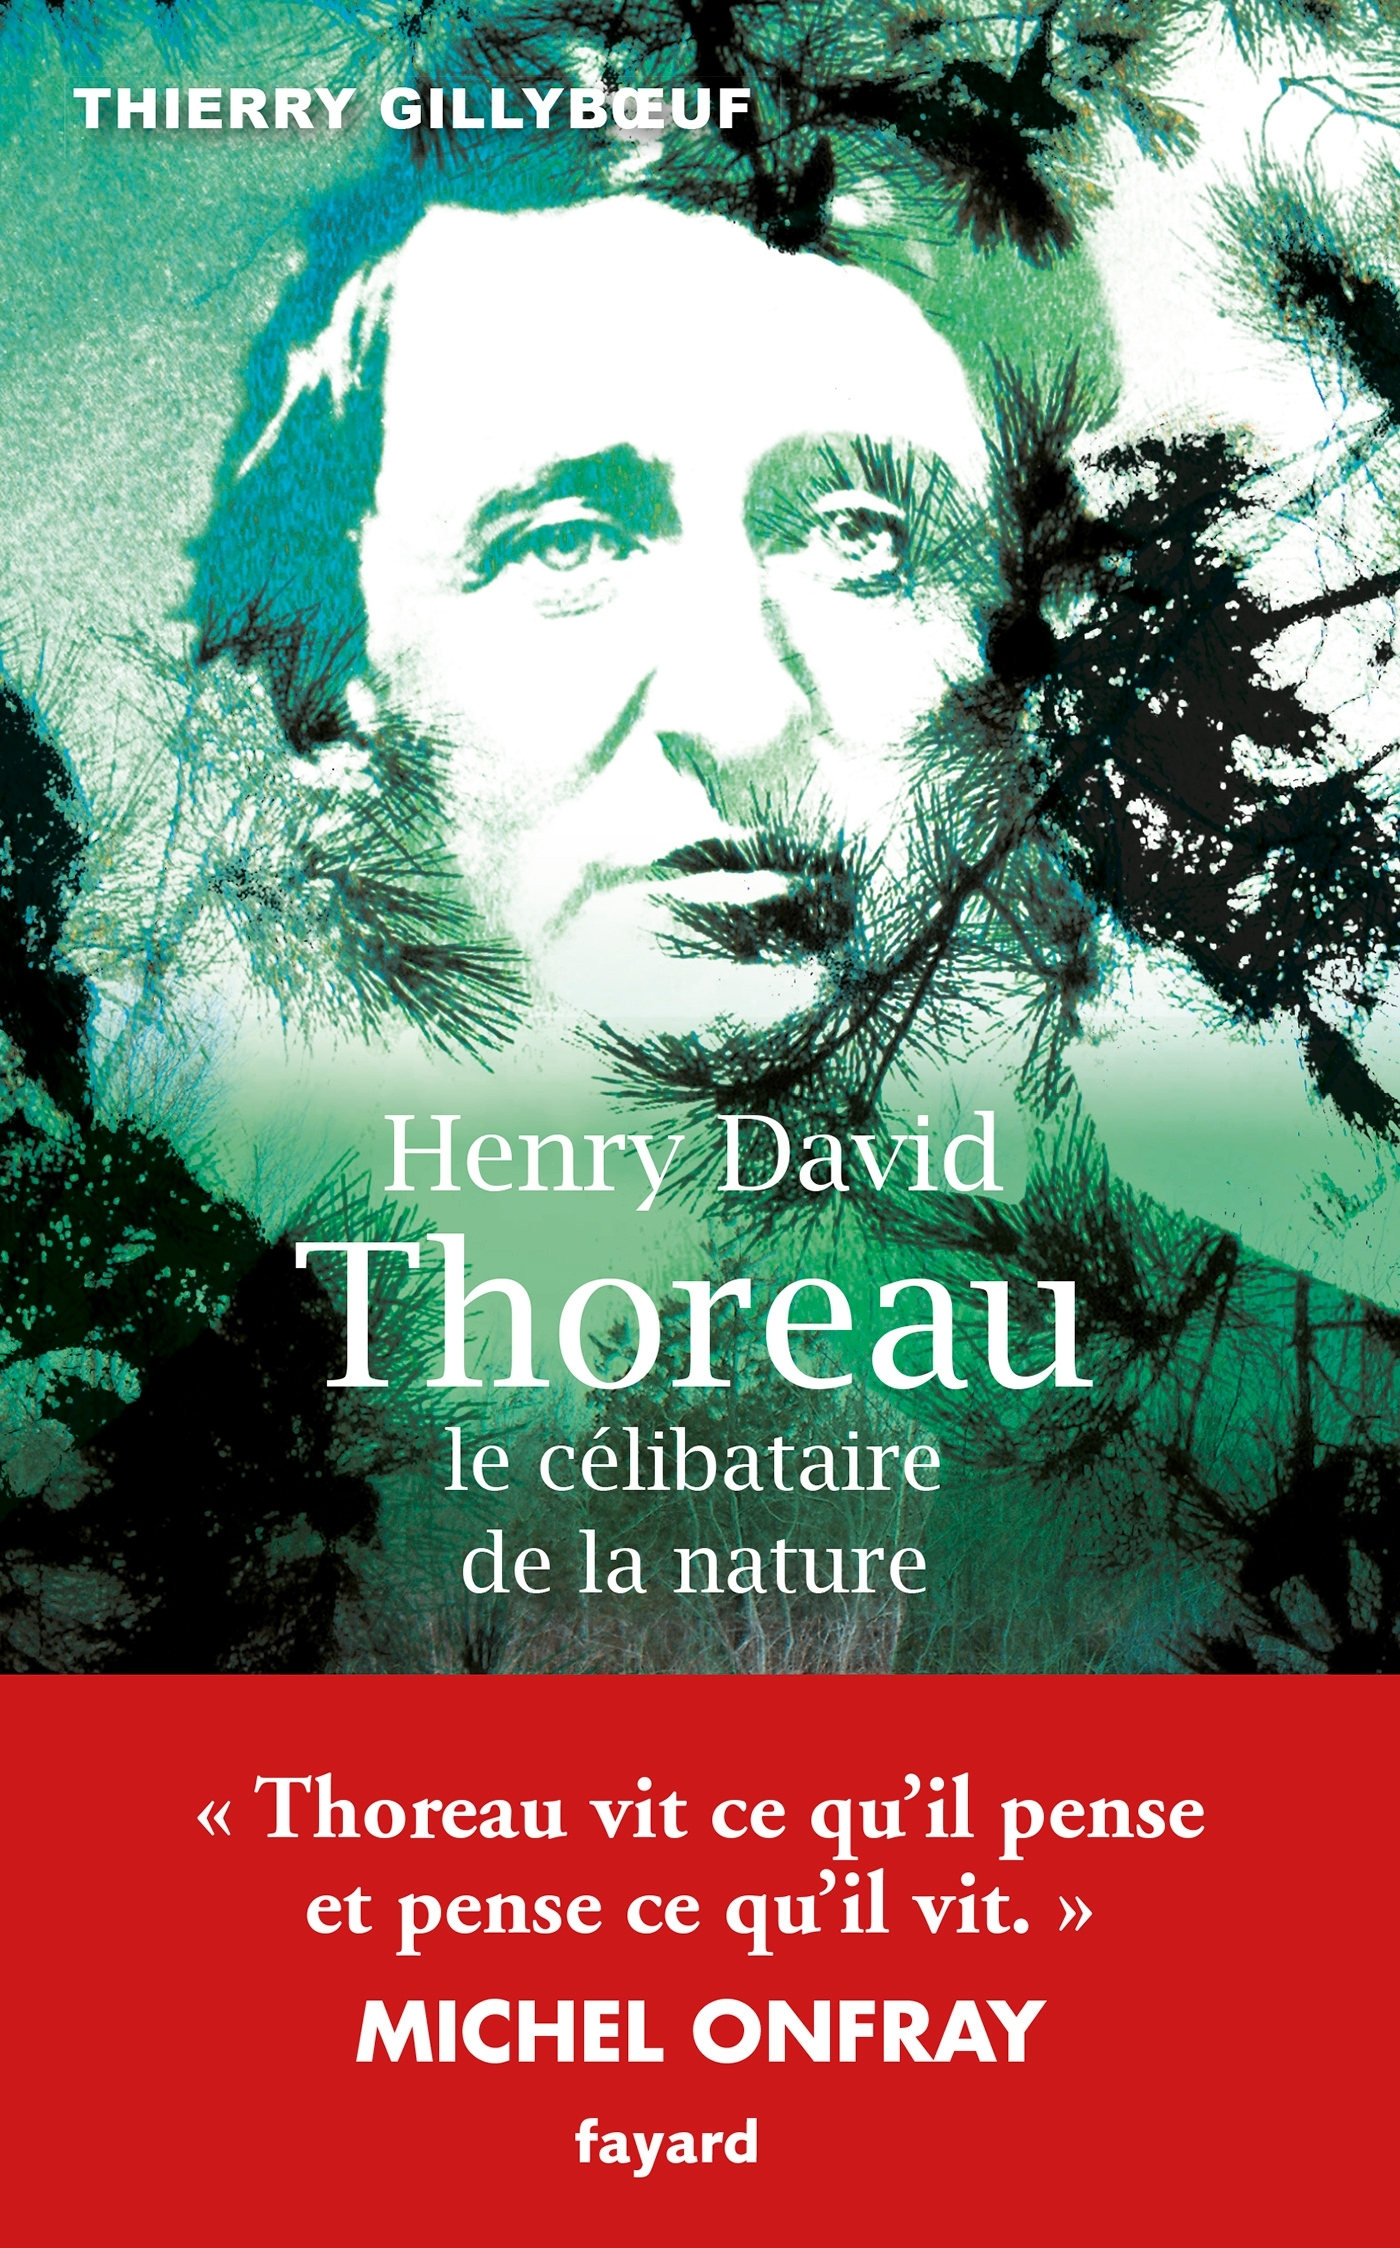 HENRY DAVID THOREAU, LE CELIBATAIRE DE LA NATURE